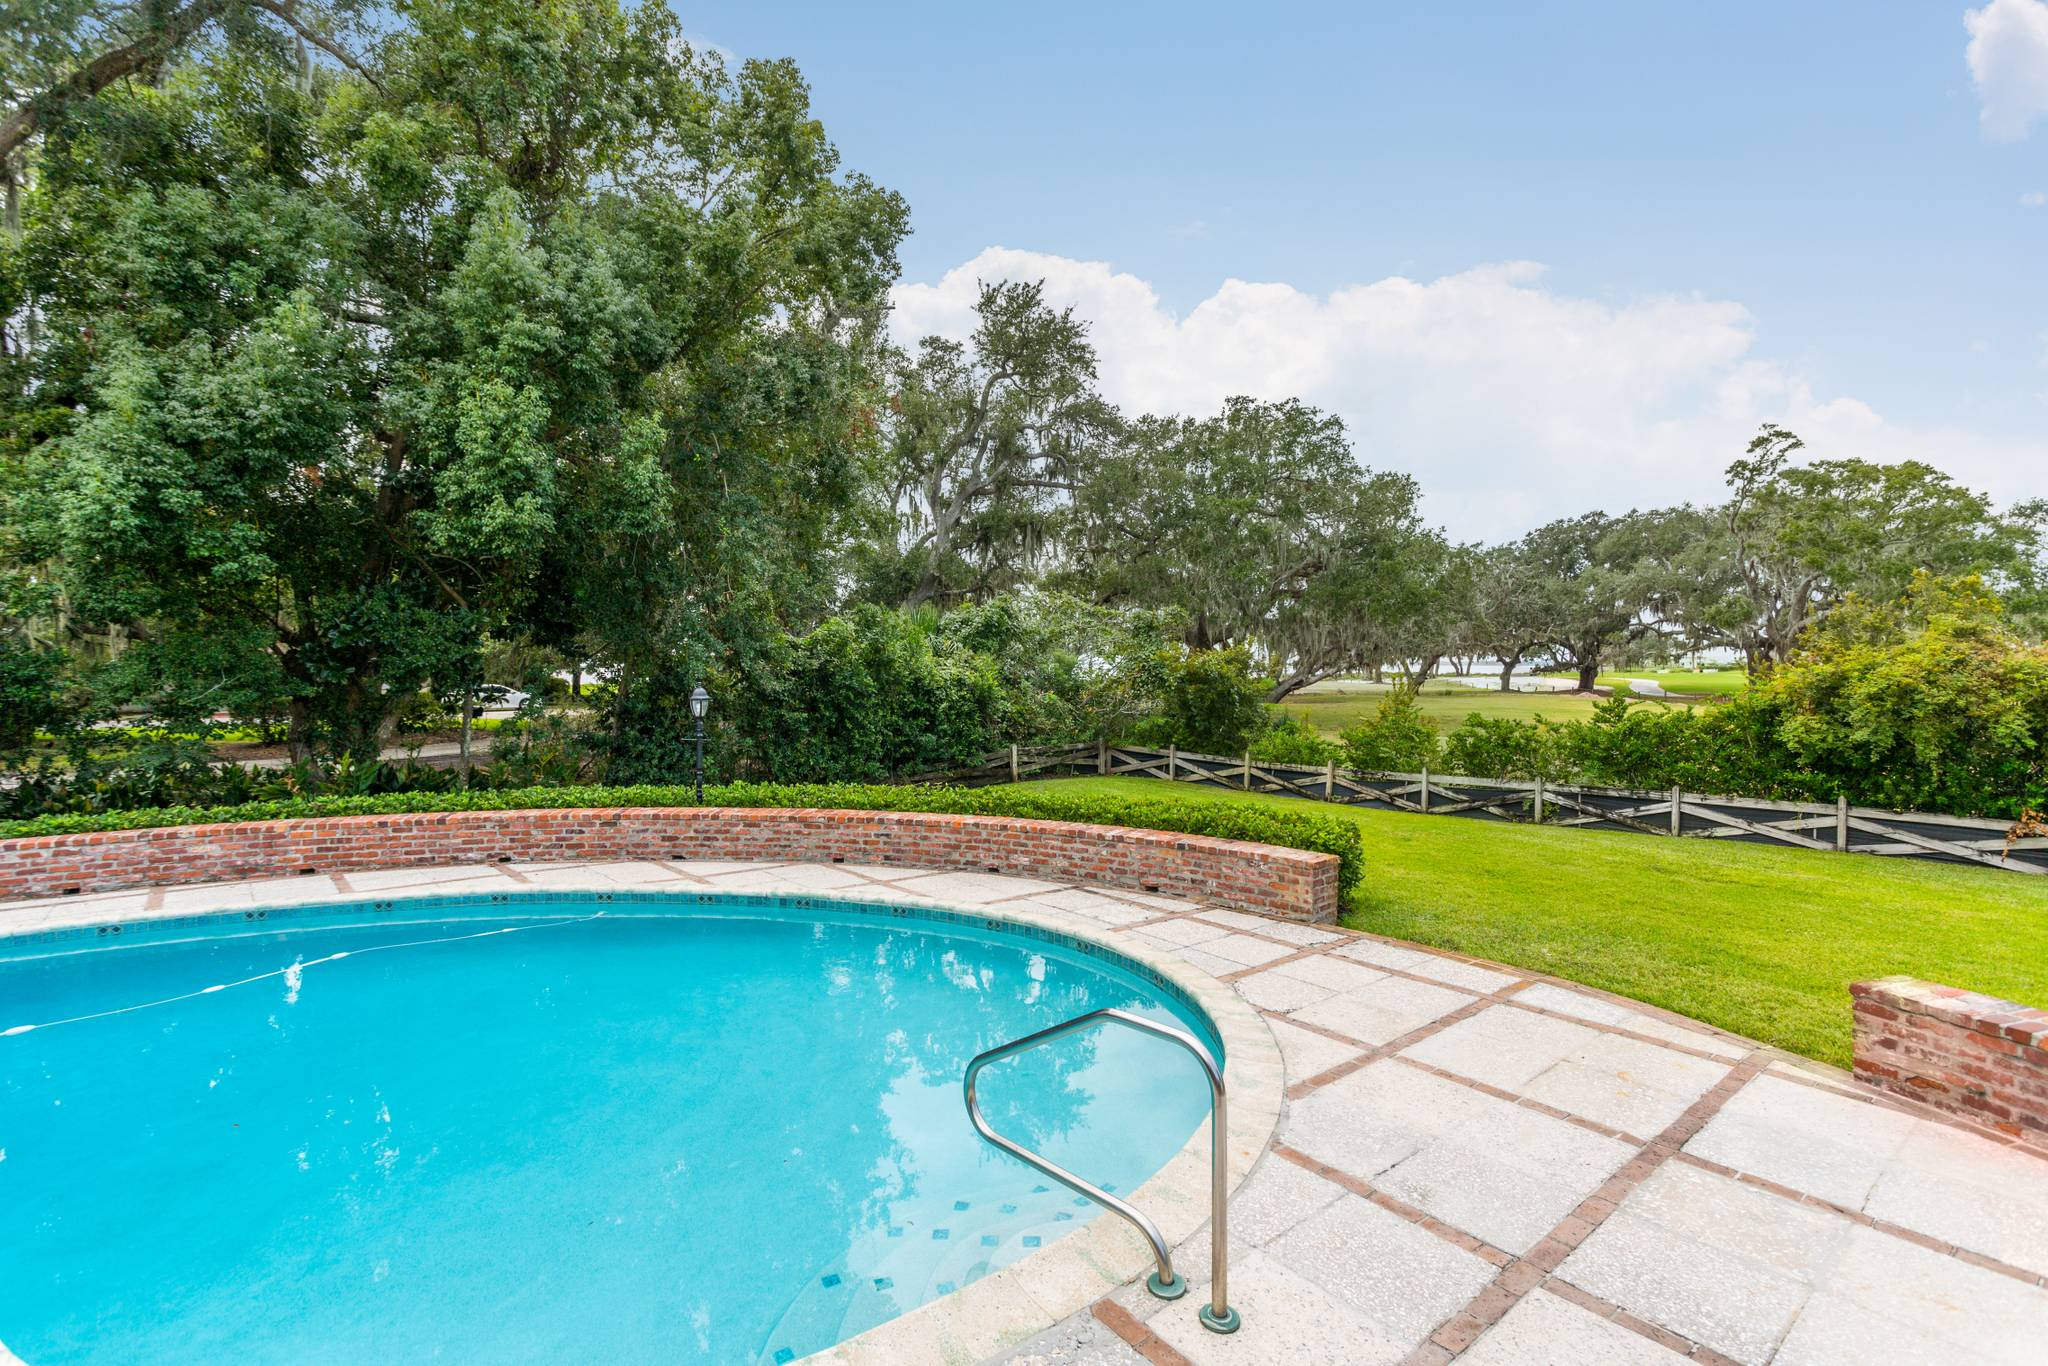 Private Pool at 154 Gould St on St Simons Island